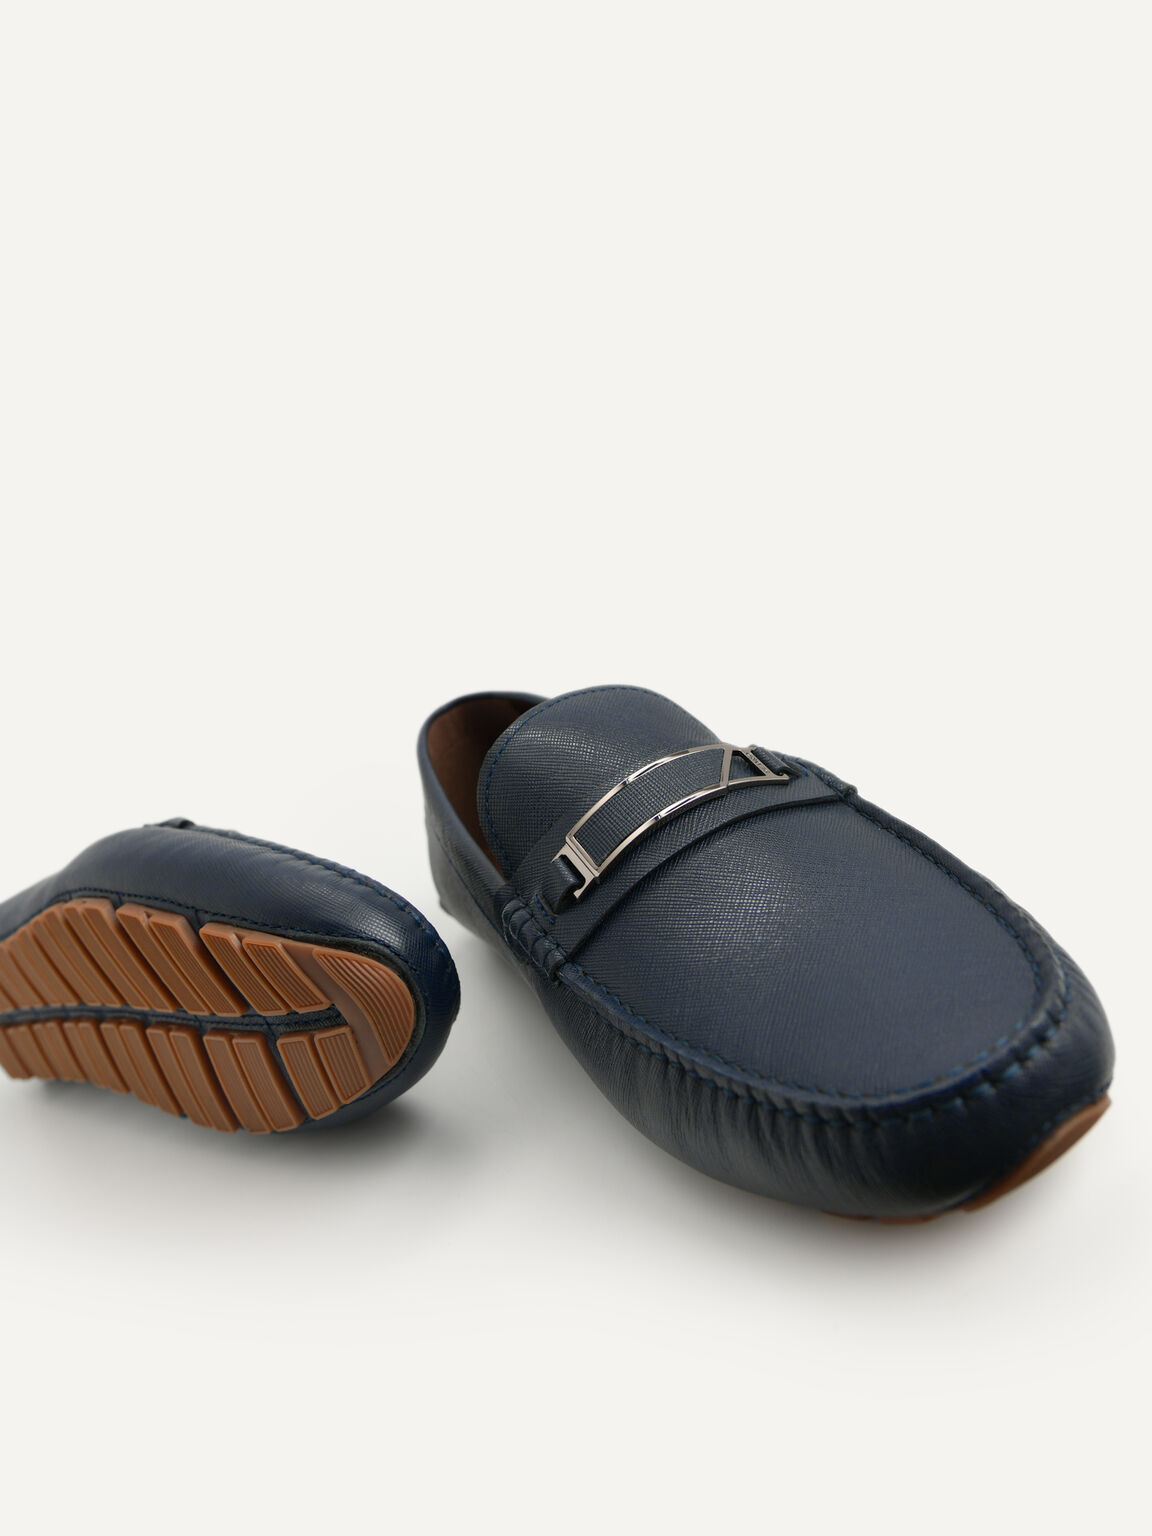 Leather Moccasins with Metal Bit, Navy, hi-res